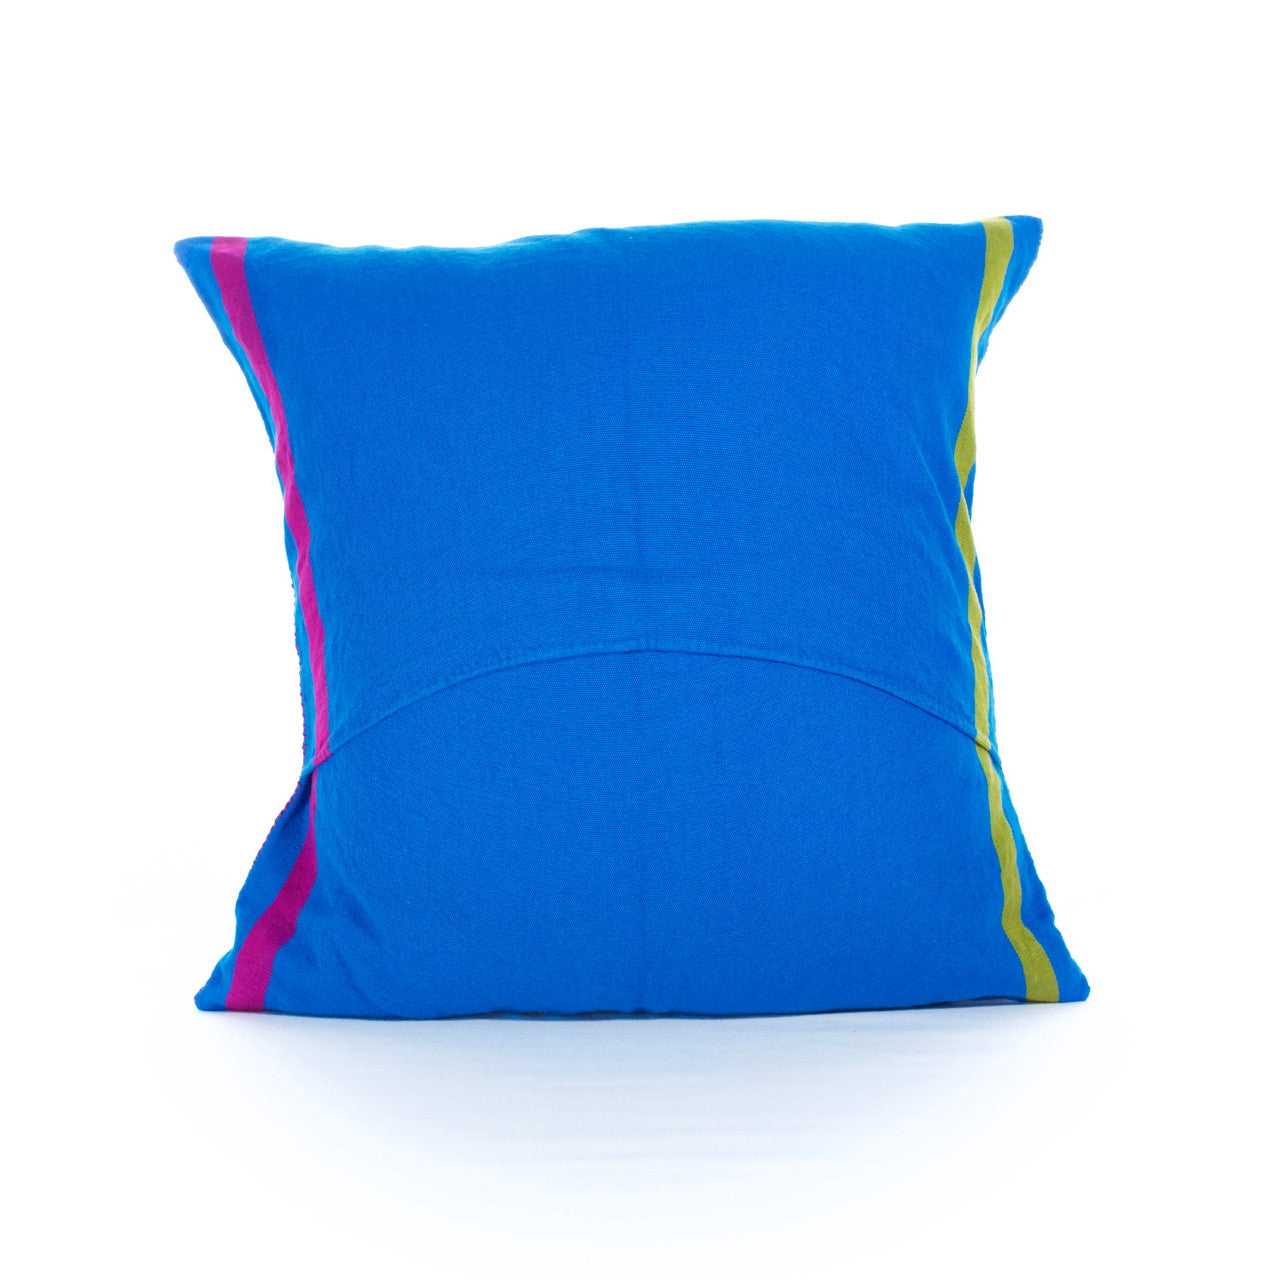 Sapo Cushion - Cielo Collective - Light Blue - 2